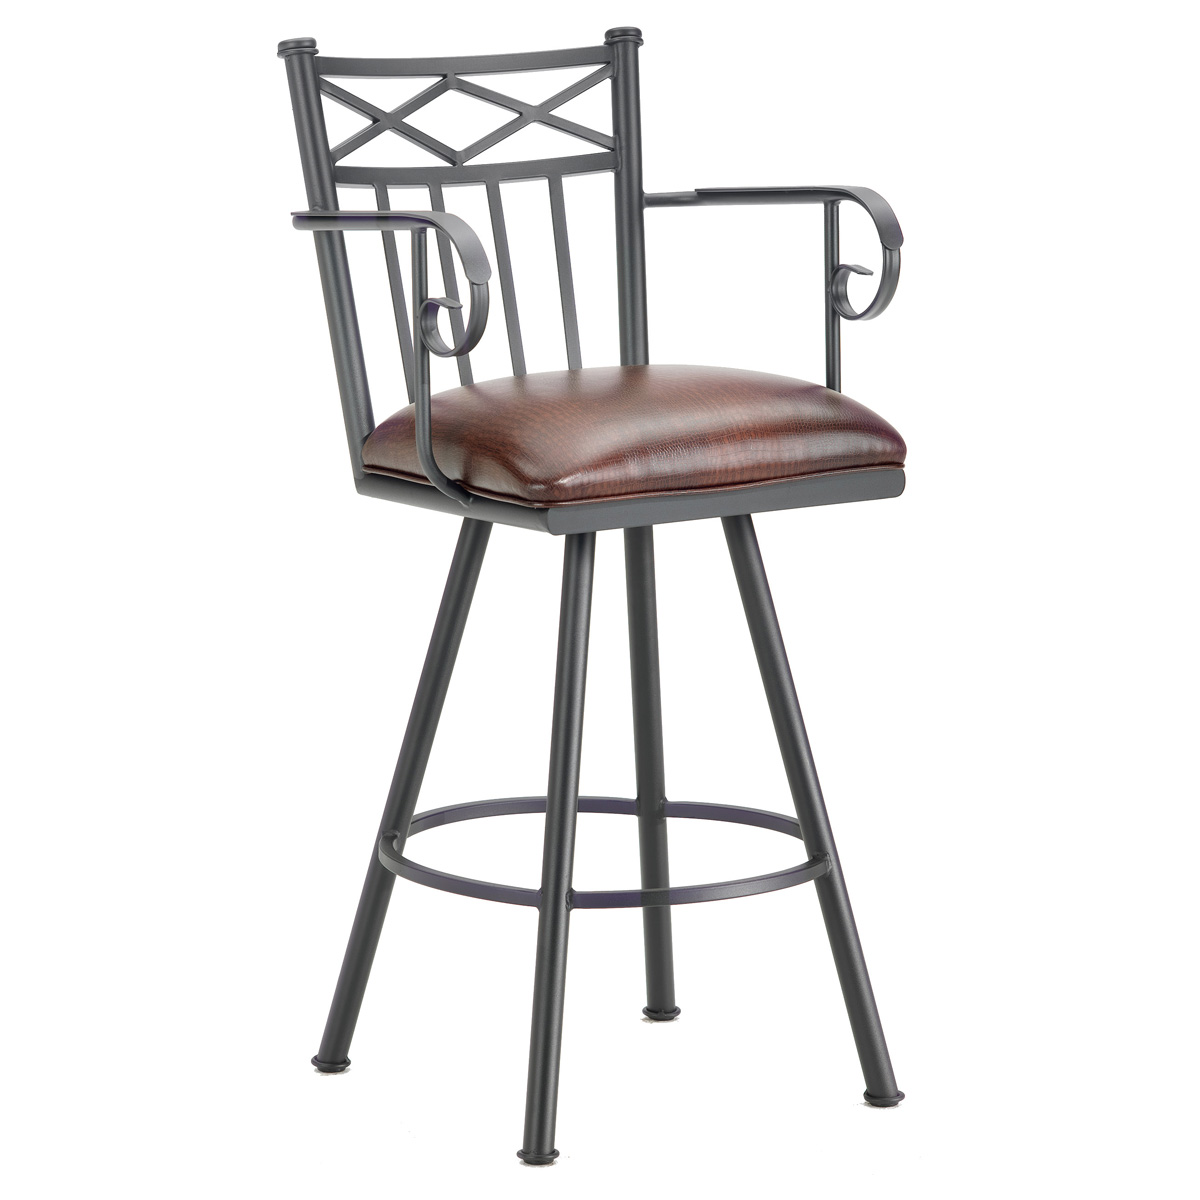 "Alexander 30"" Swivel Bar Stool - Armrests, X Motif, Lamp Black, Alligator Leather"